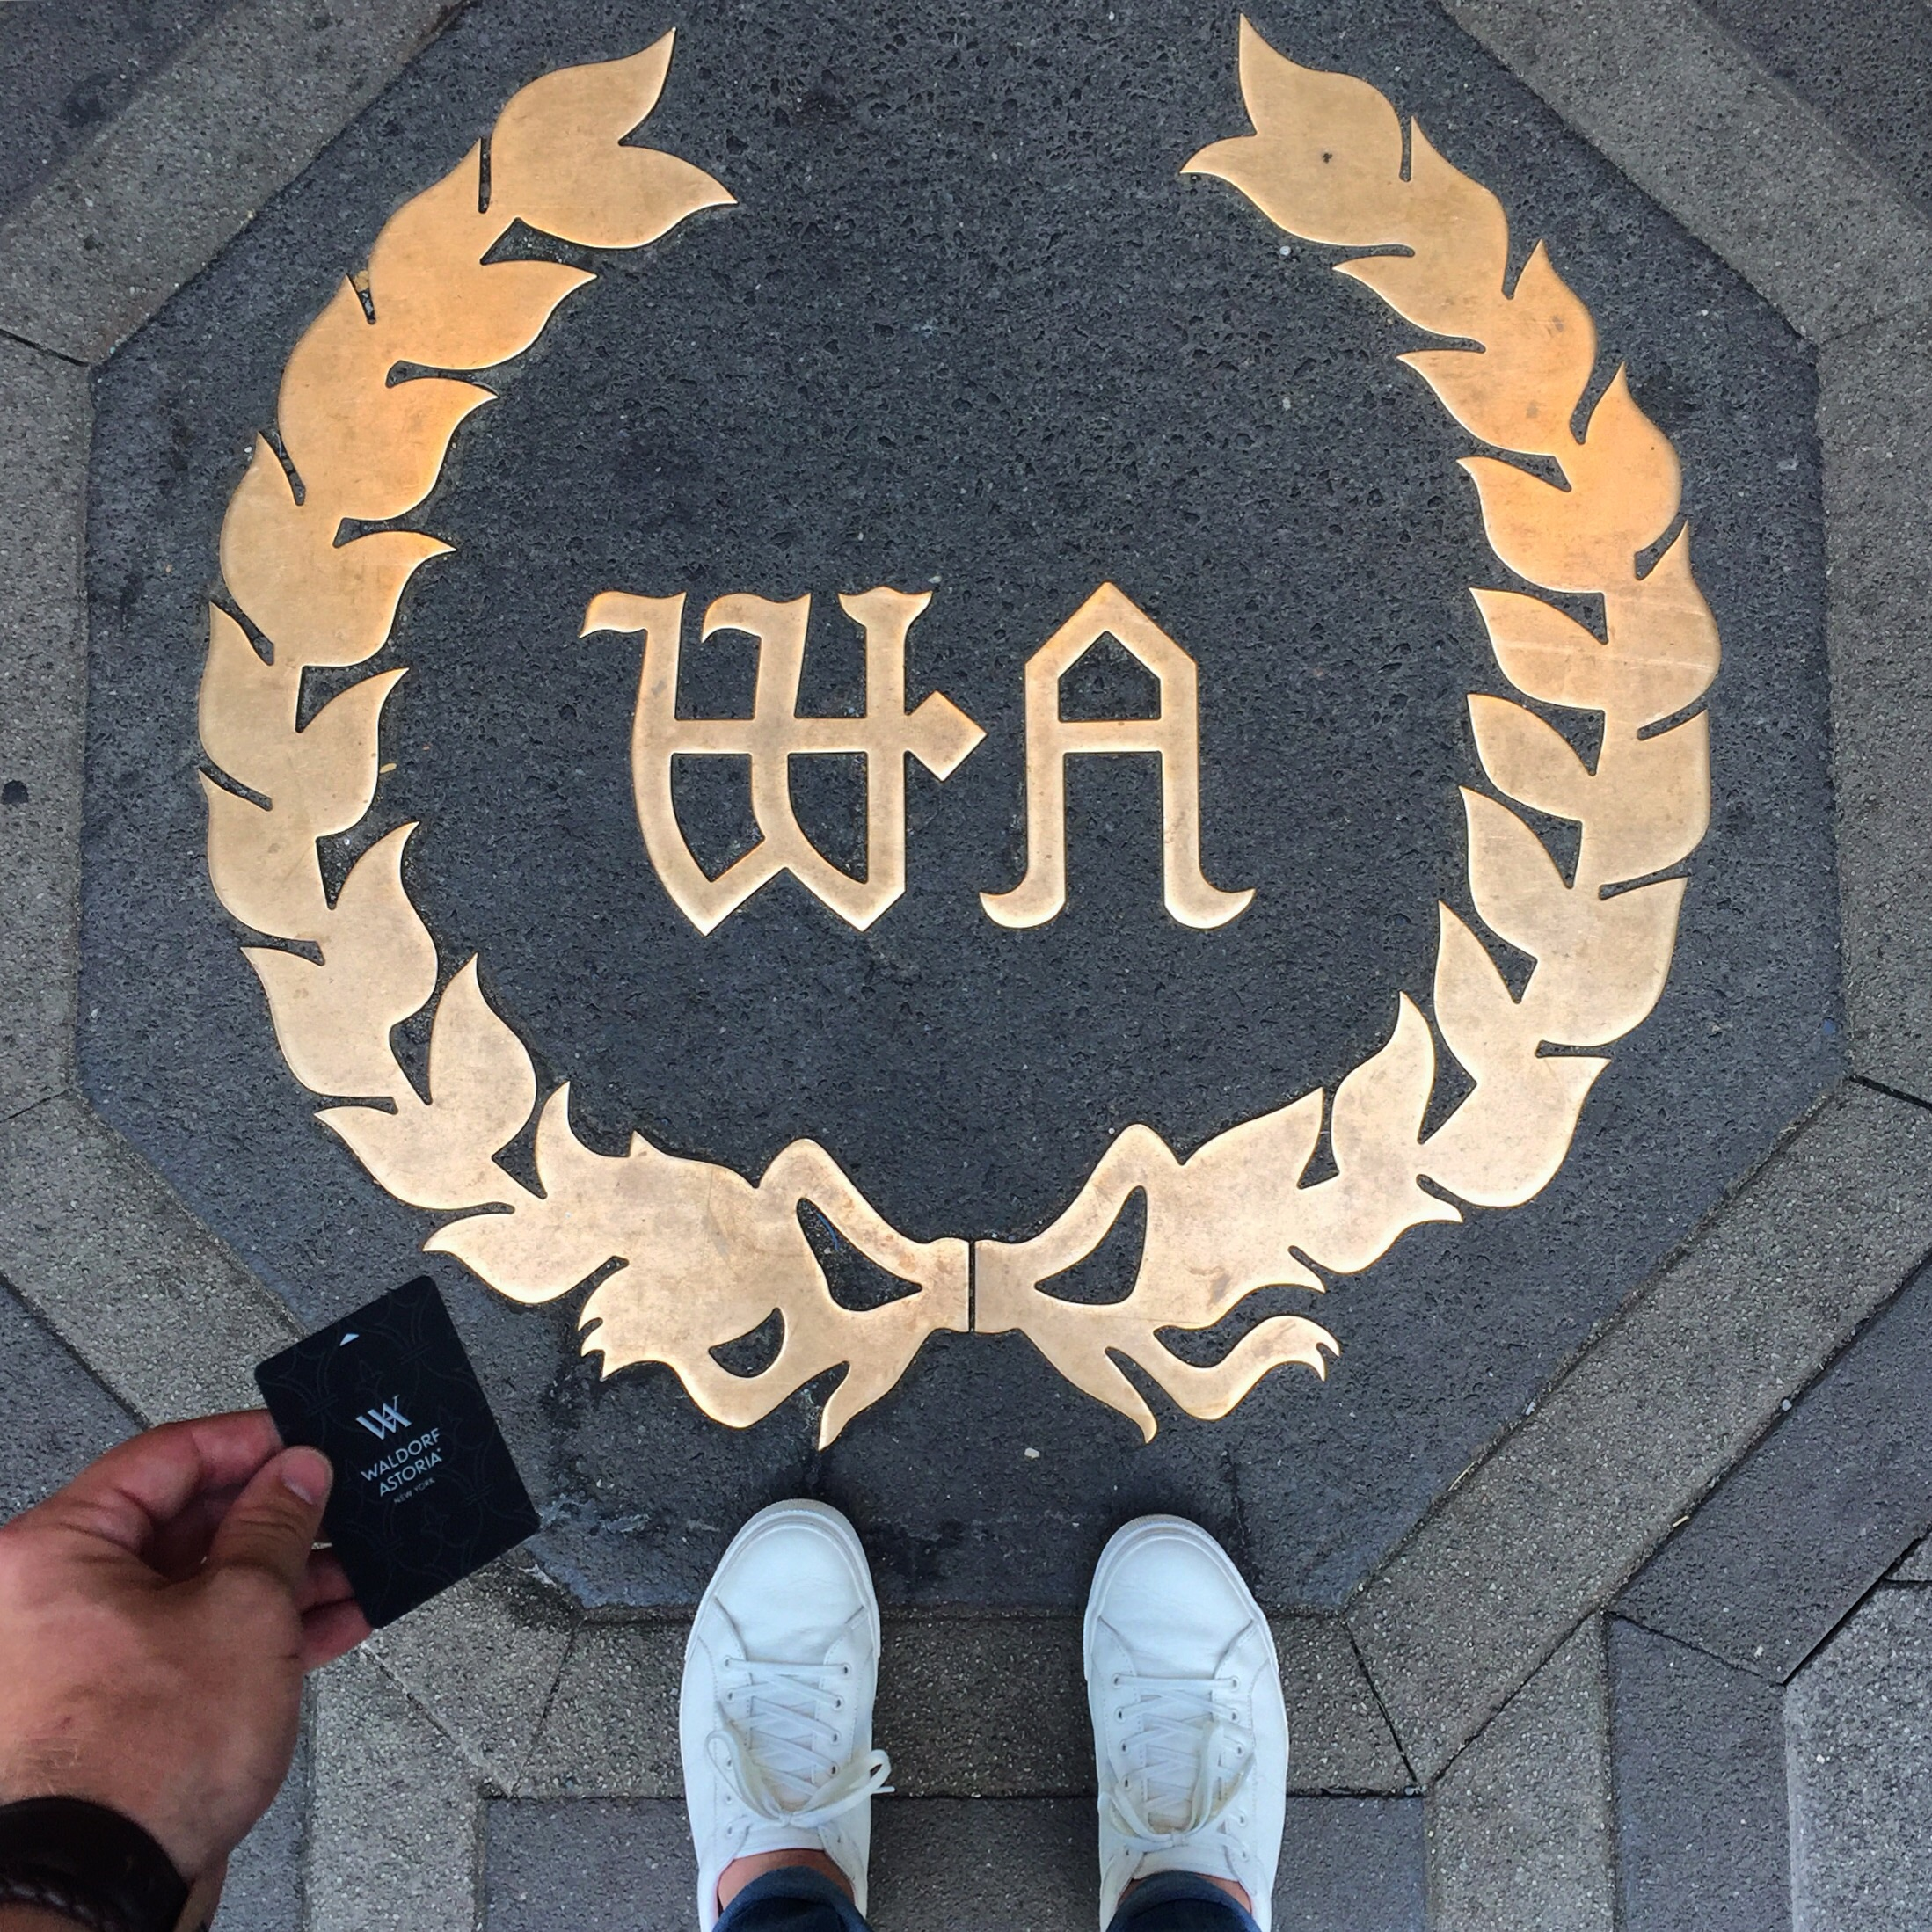 The Park Avenue entrance of the Waldorf Astoria with my black card.